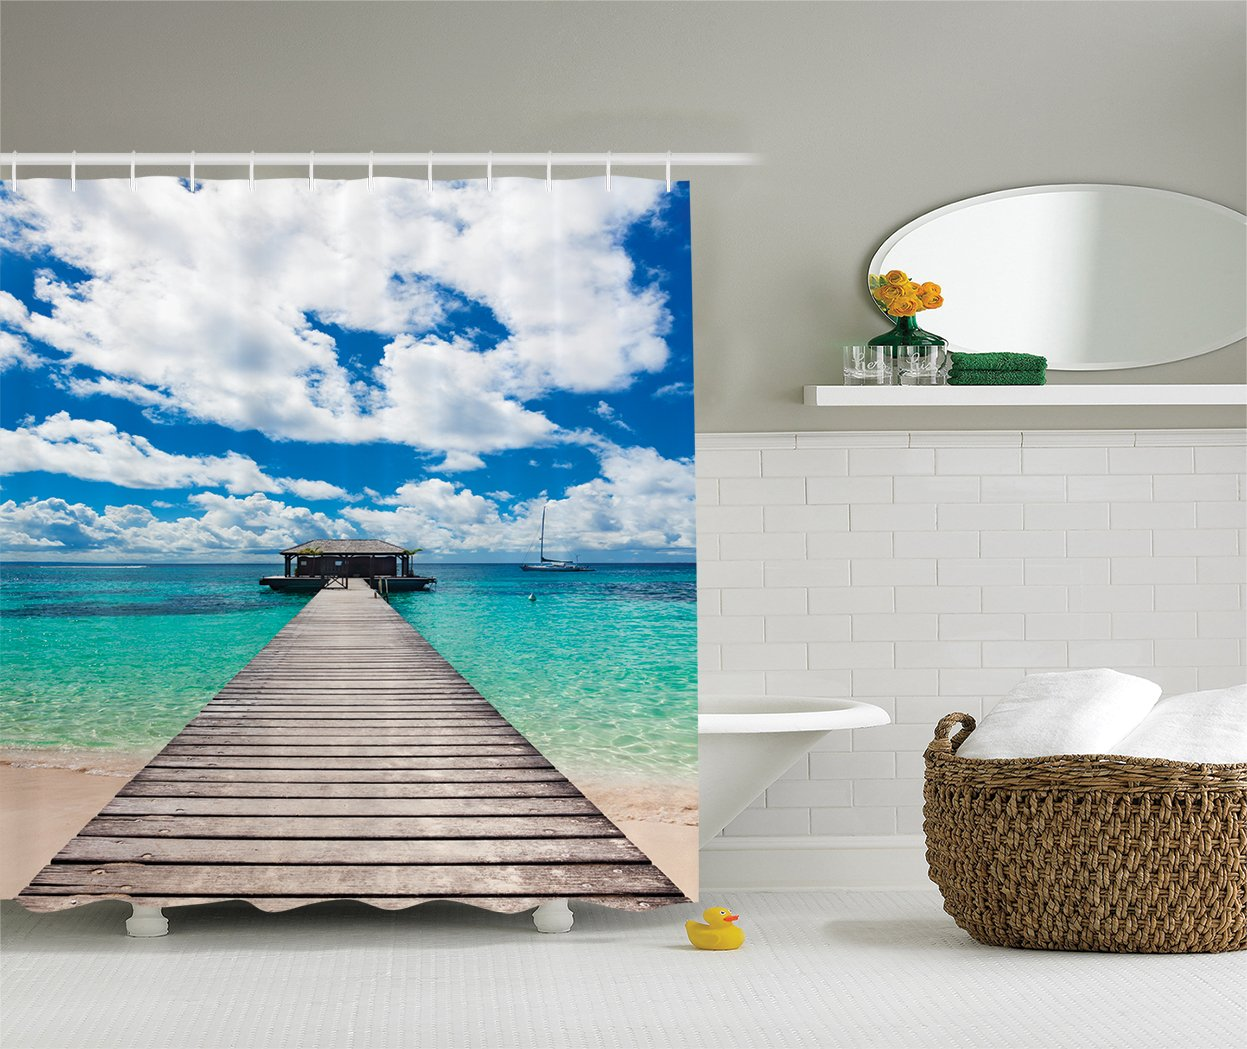 Turquoise Blue Ivory Caribbean Seascape Jetty and Sailboat Cloudy Sky Clear Ocean Picture Ambesonne Wooden Bridge Decor Collection Polyester Fabric Bathroom Shower Curtain Set with Hooks